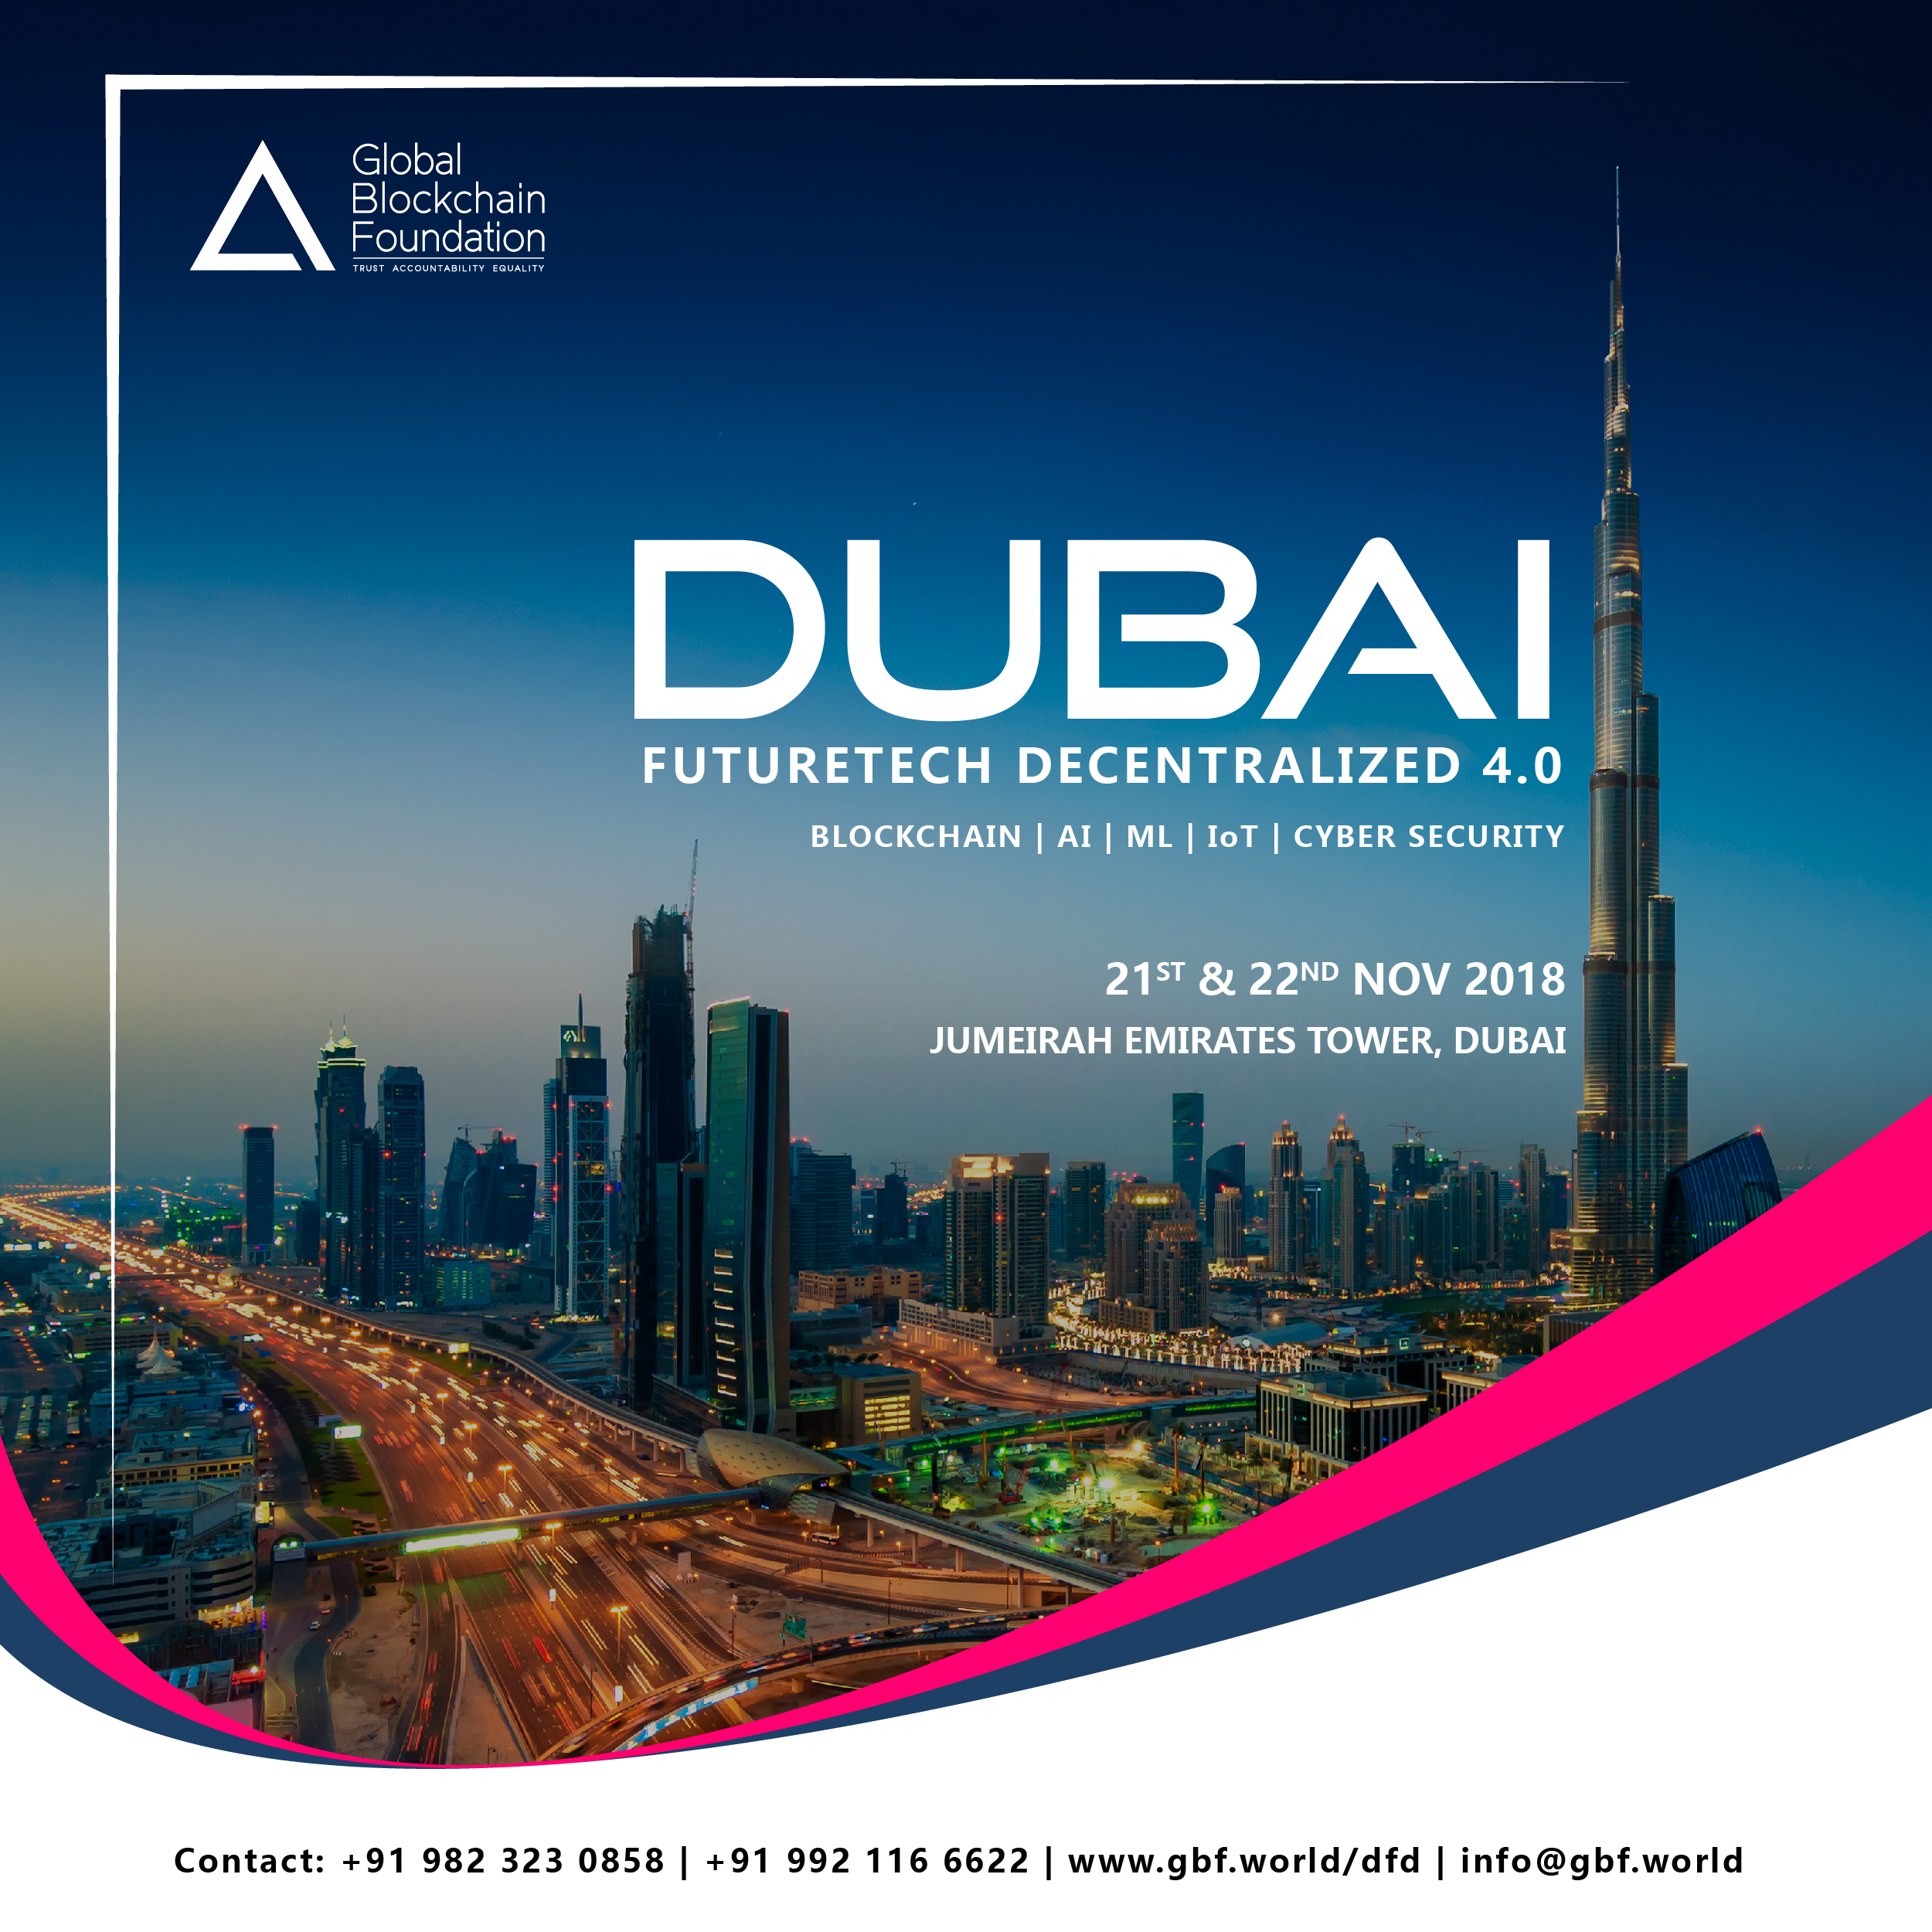 The Global Blockchain Foundation Welcomes you for the Dubai Future-Tech Decentralized 4.0 on the 21th & 22th of November